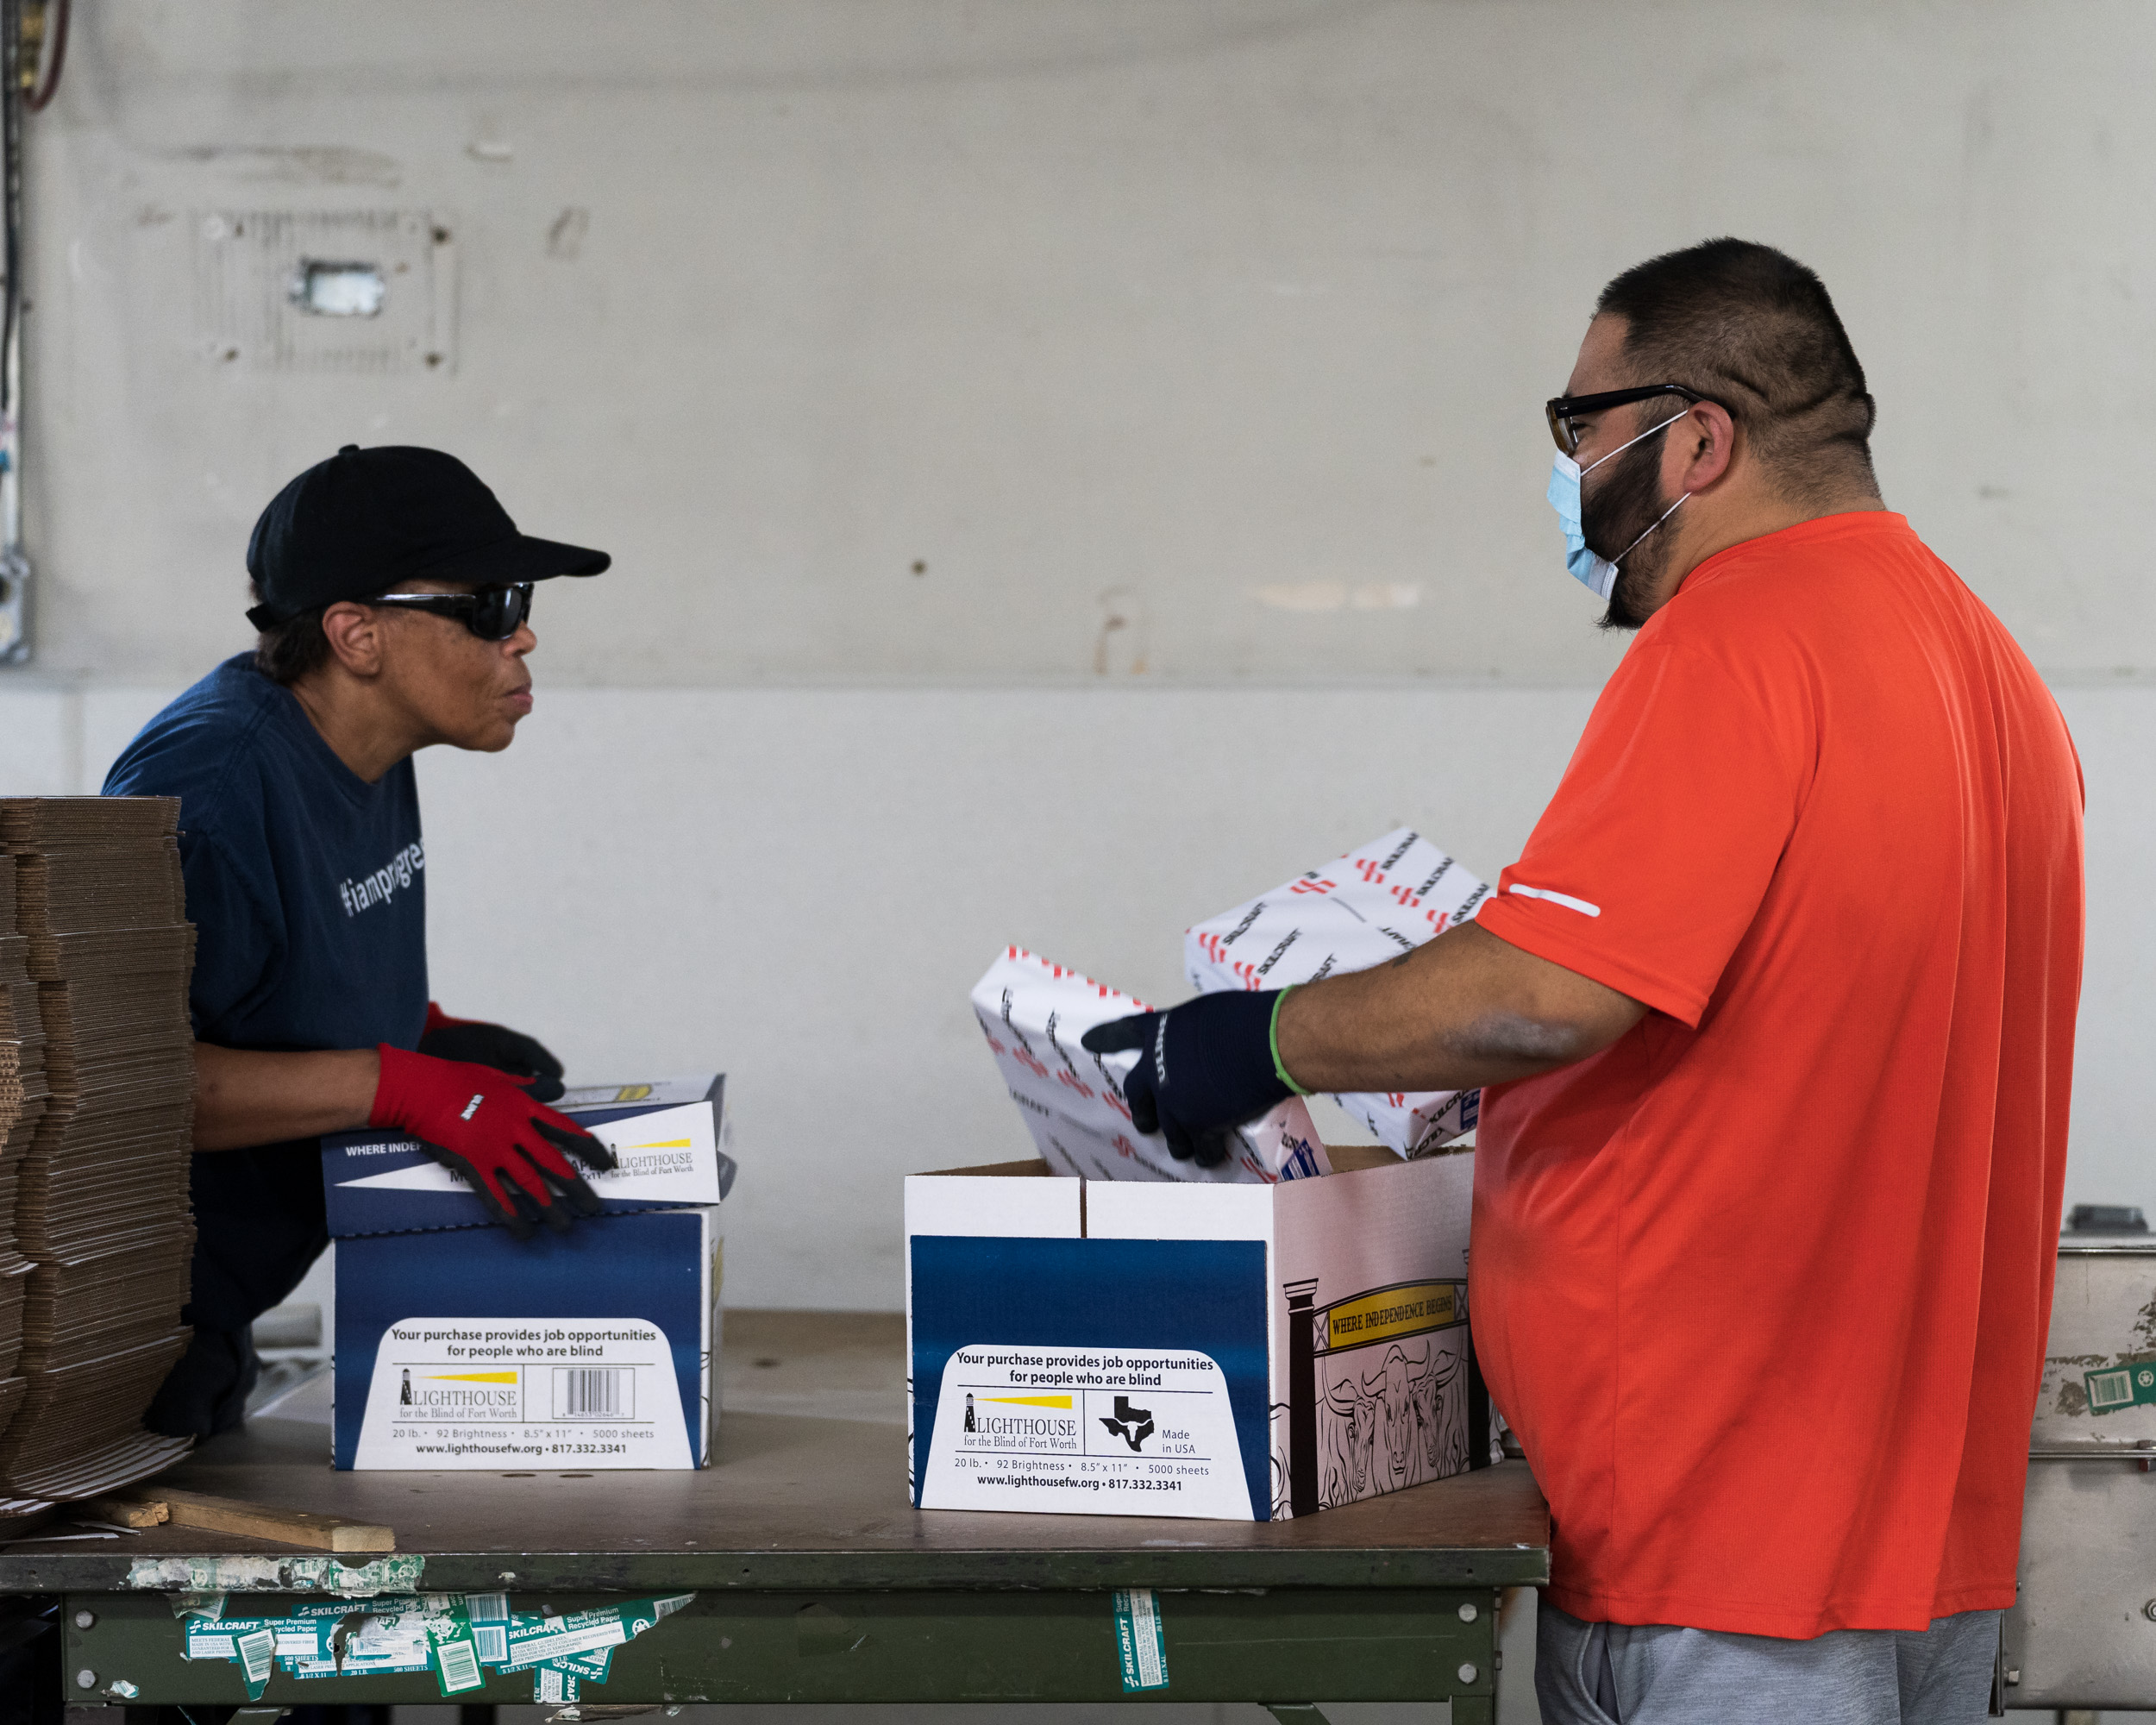 Two workers talk to each other while filling boxes with paper